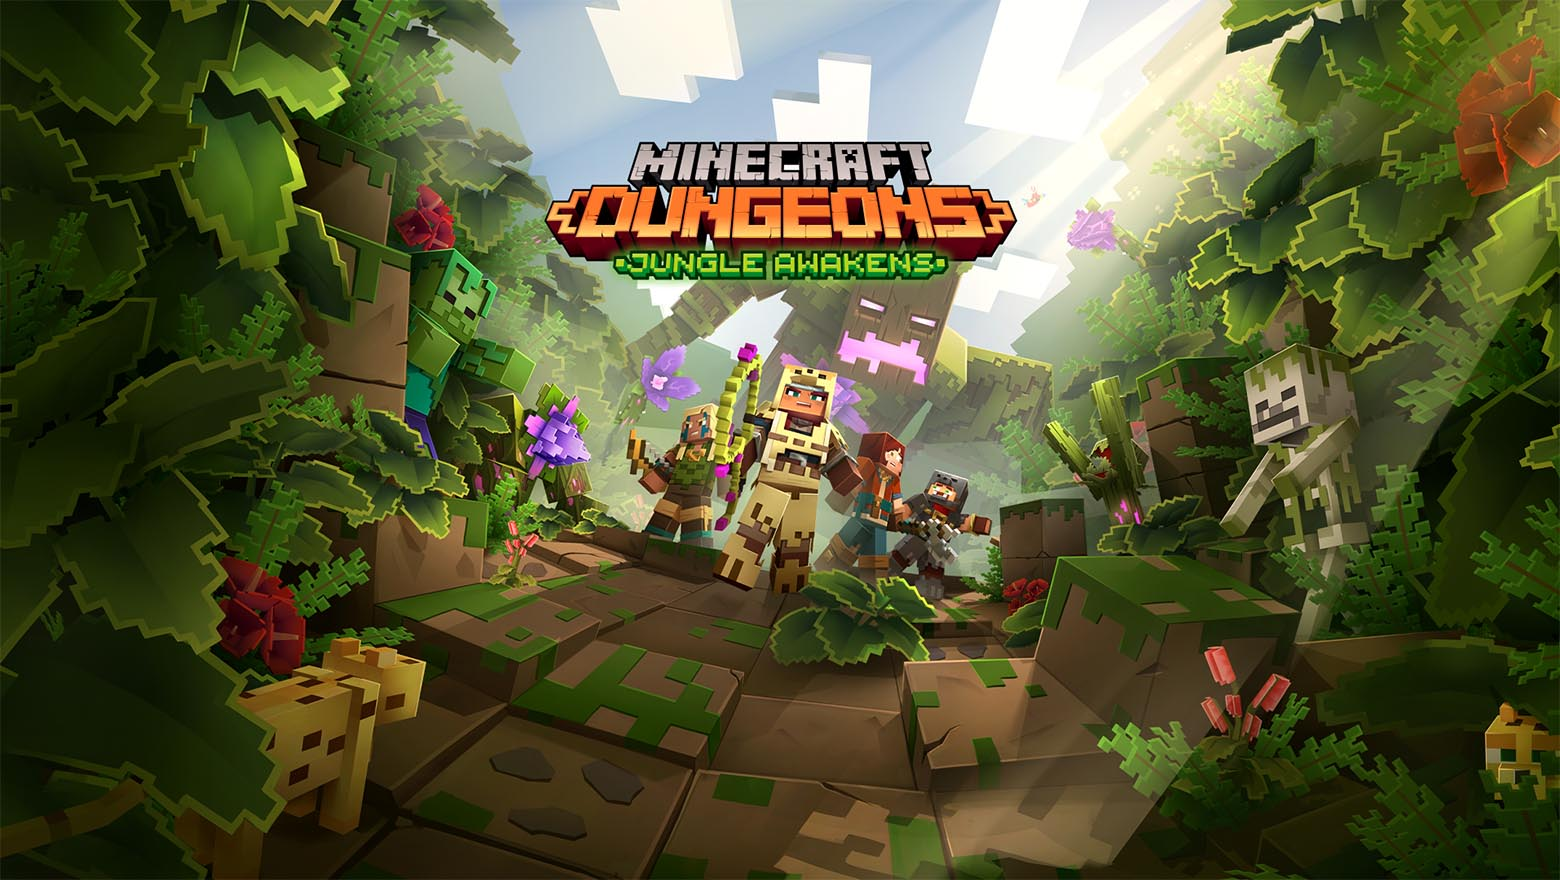 Minecraft Dungeons Releases The Jungle Awakens DLC And Some Significant Changes